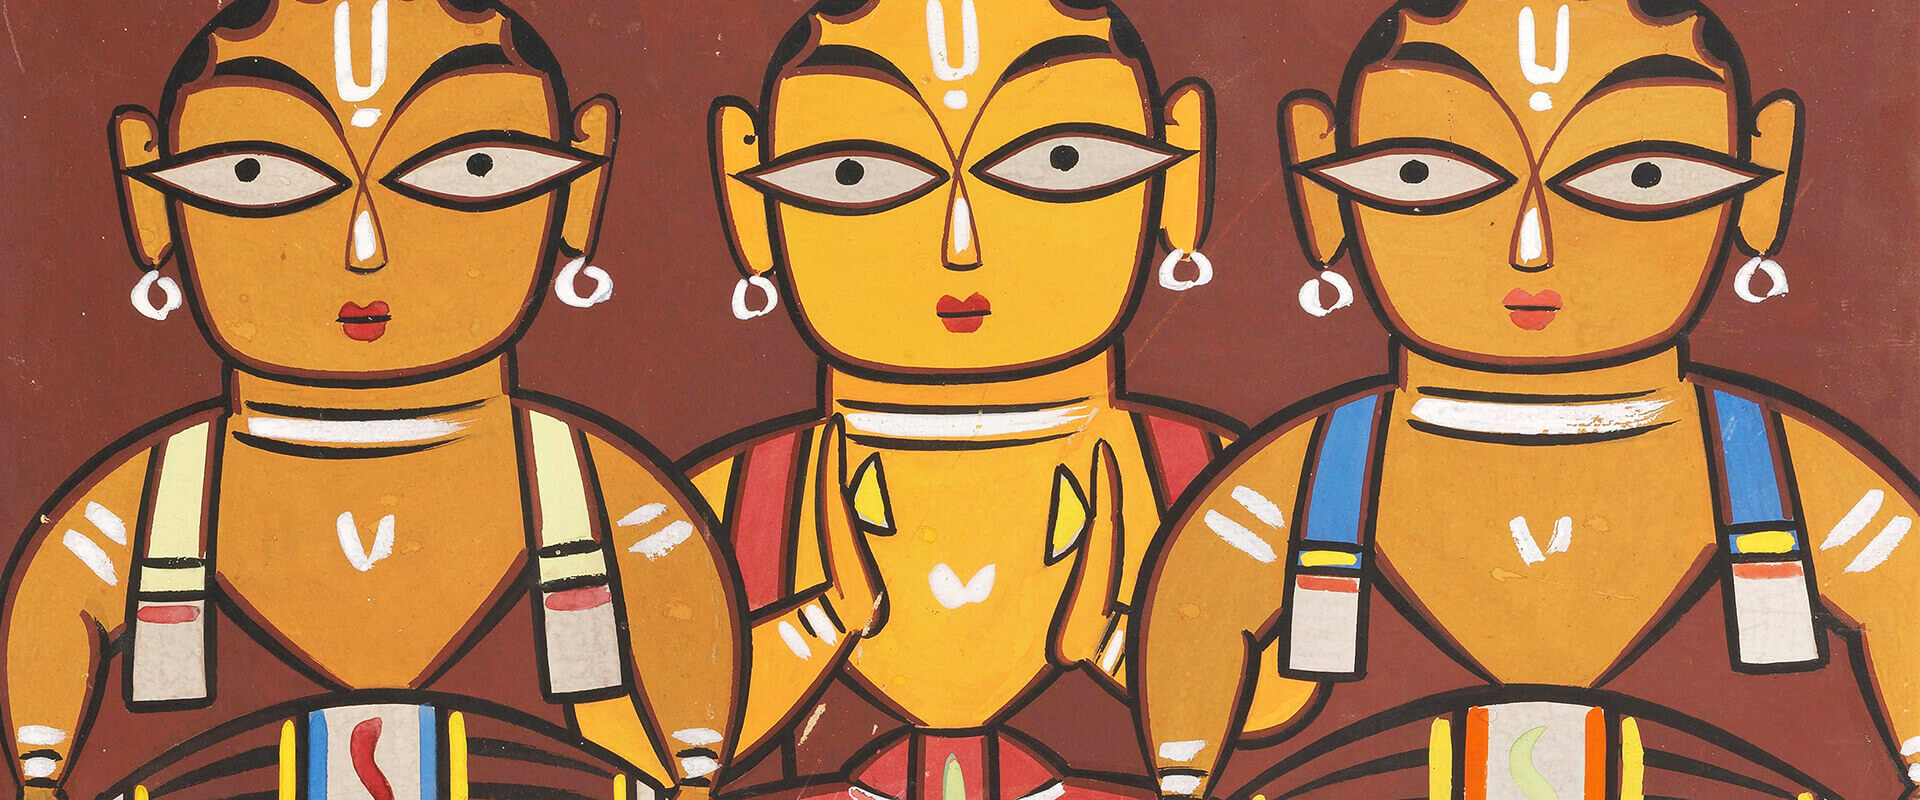 Jamini Roy Paintings Artworks Collection | Buy Posters, Frames, Canvas, Digital Art & Large Size Prints Of The Famous Old Master's Artworks